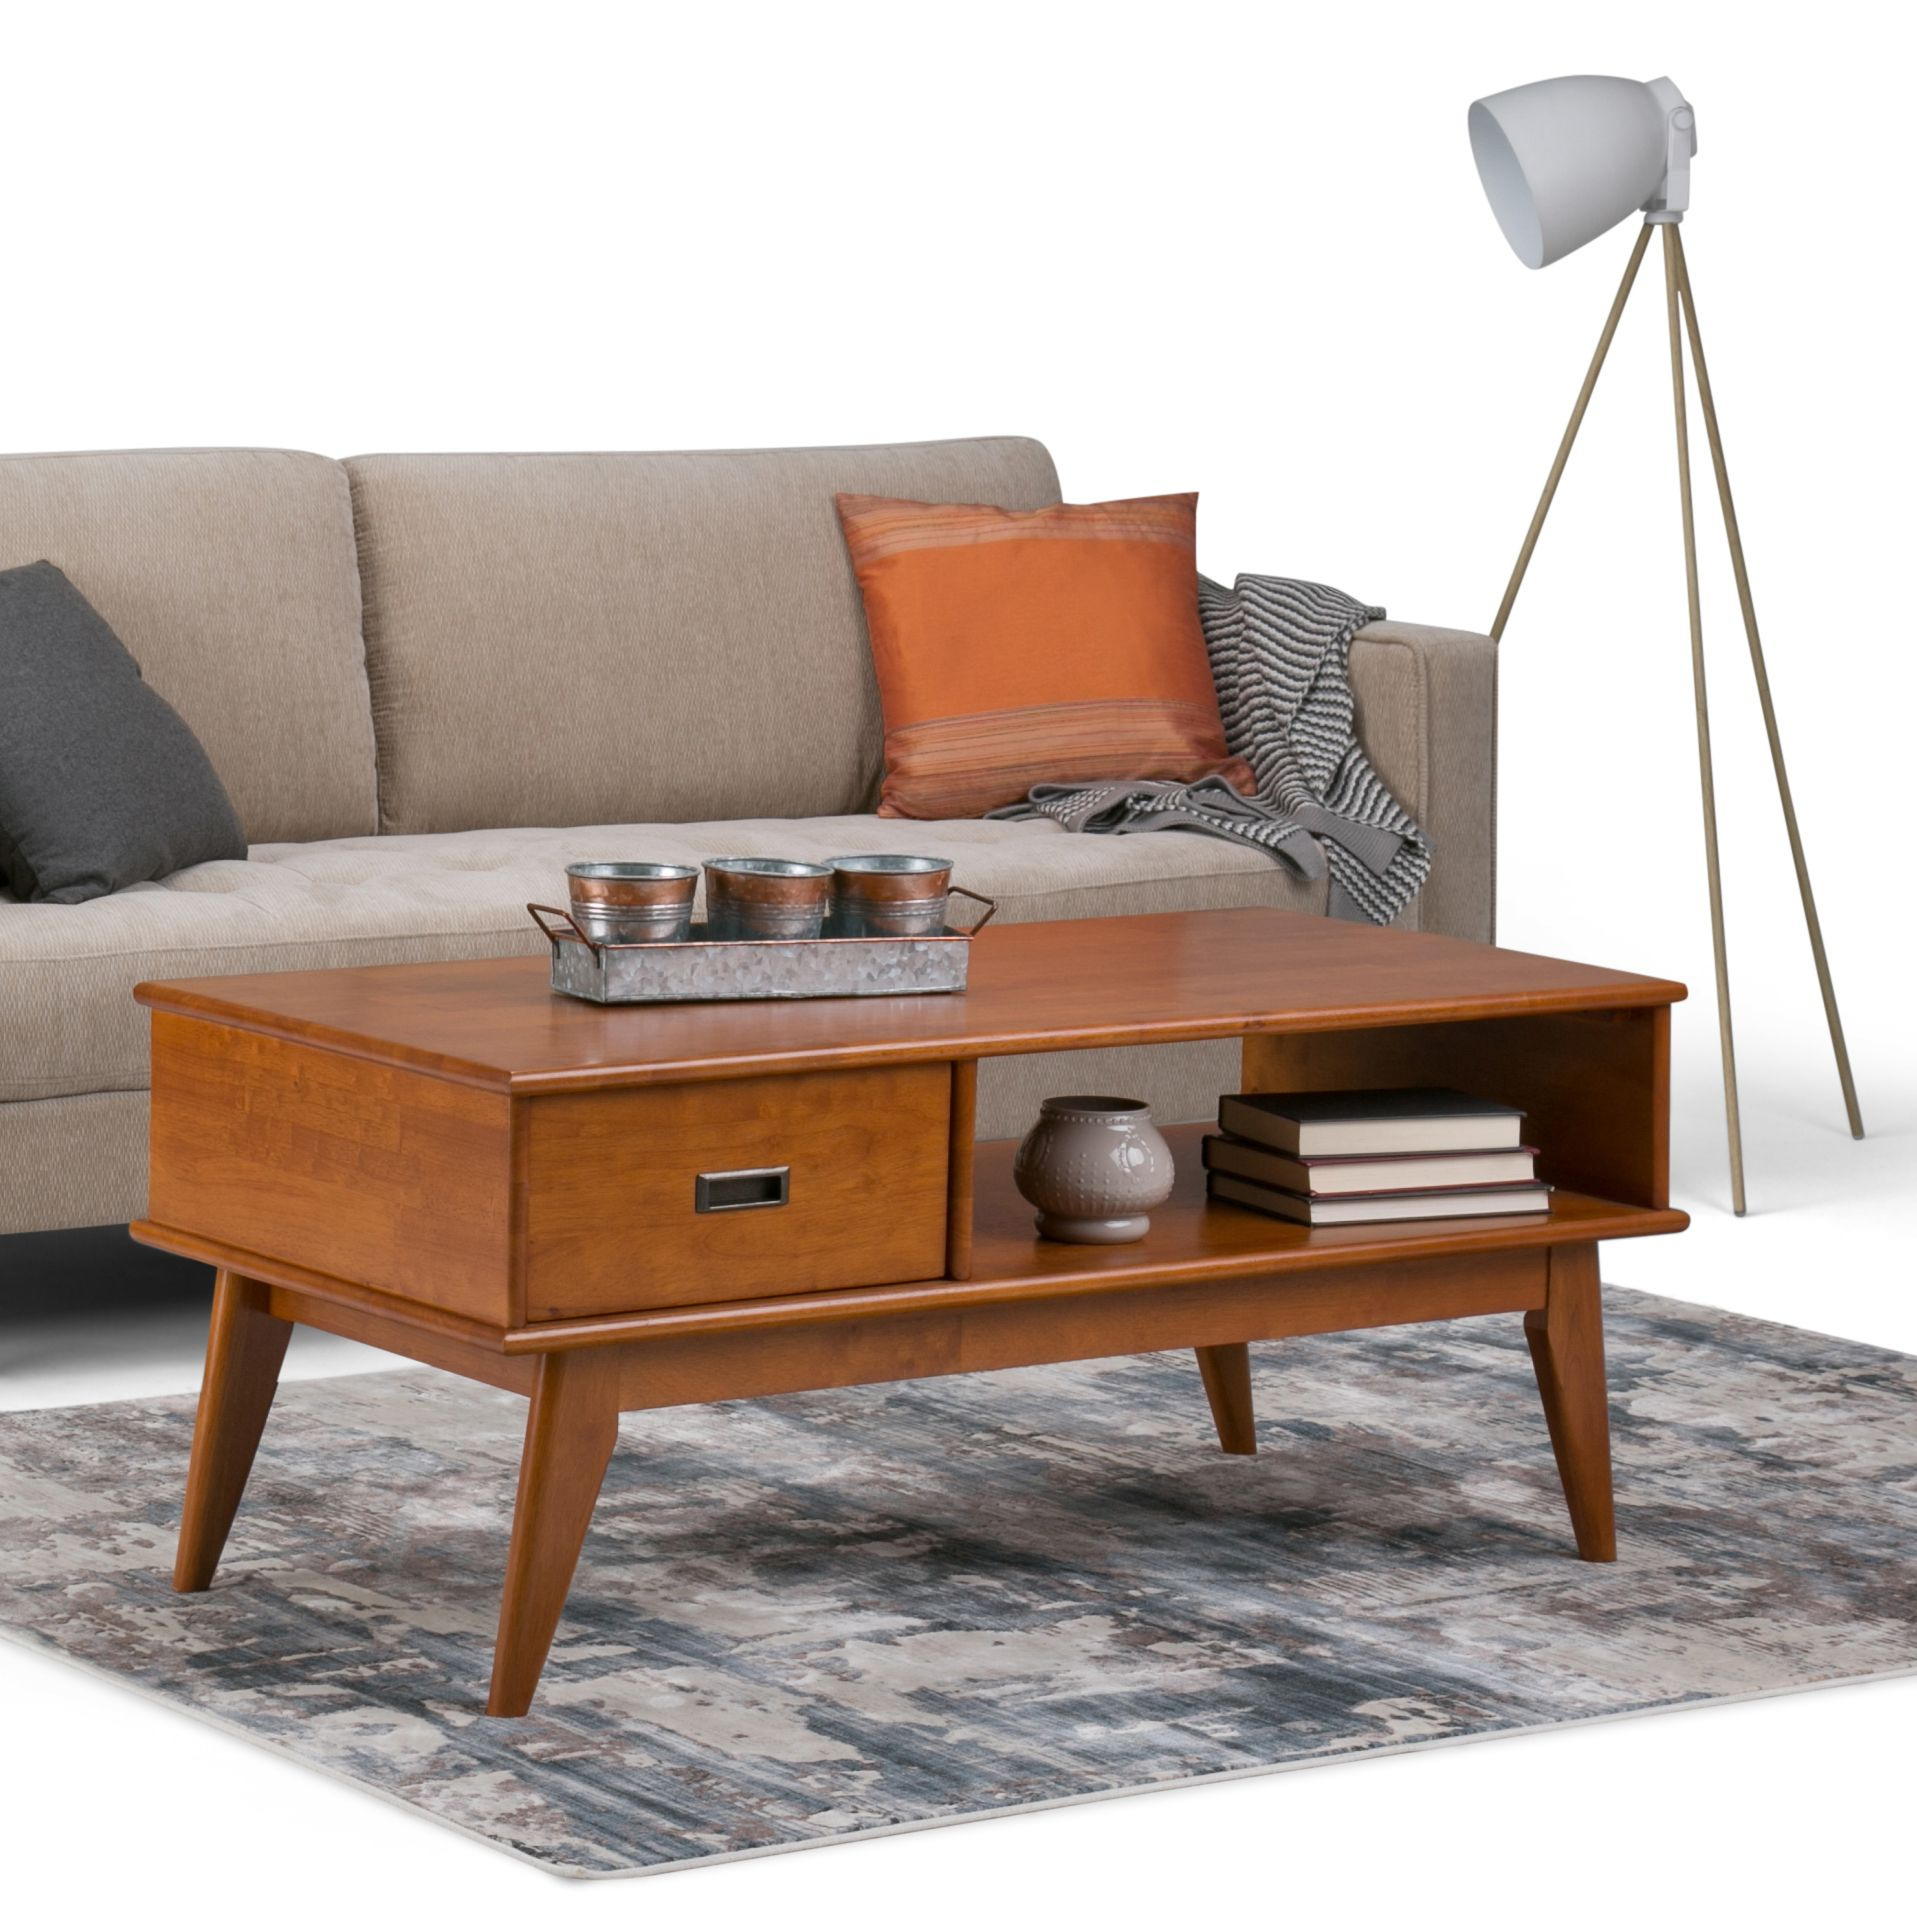 Coffee Time With The Draper Coffee Table Coffee Table Mid Century Coffee Table Mid Century Modern Coffee Table [ 1917 x 1917 Pixel ]